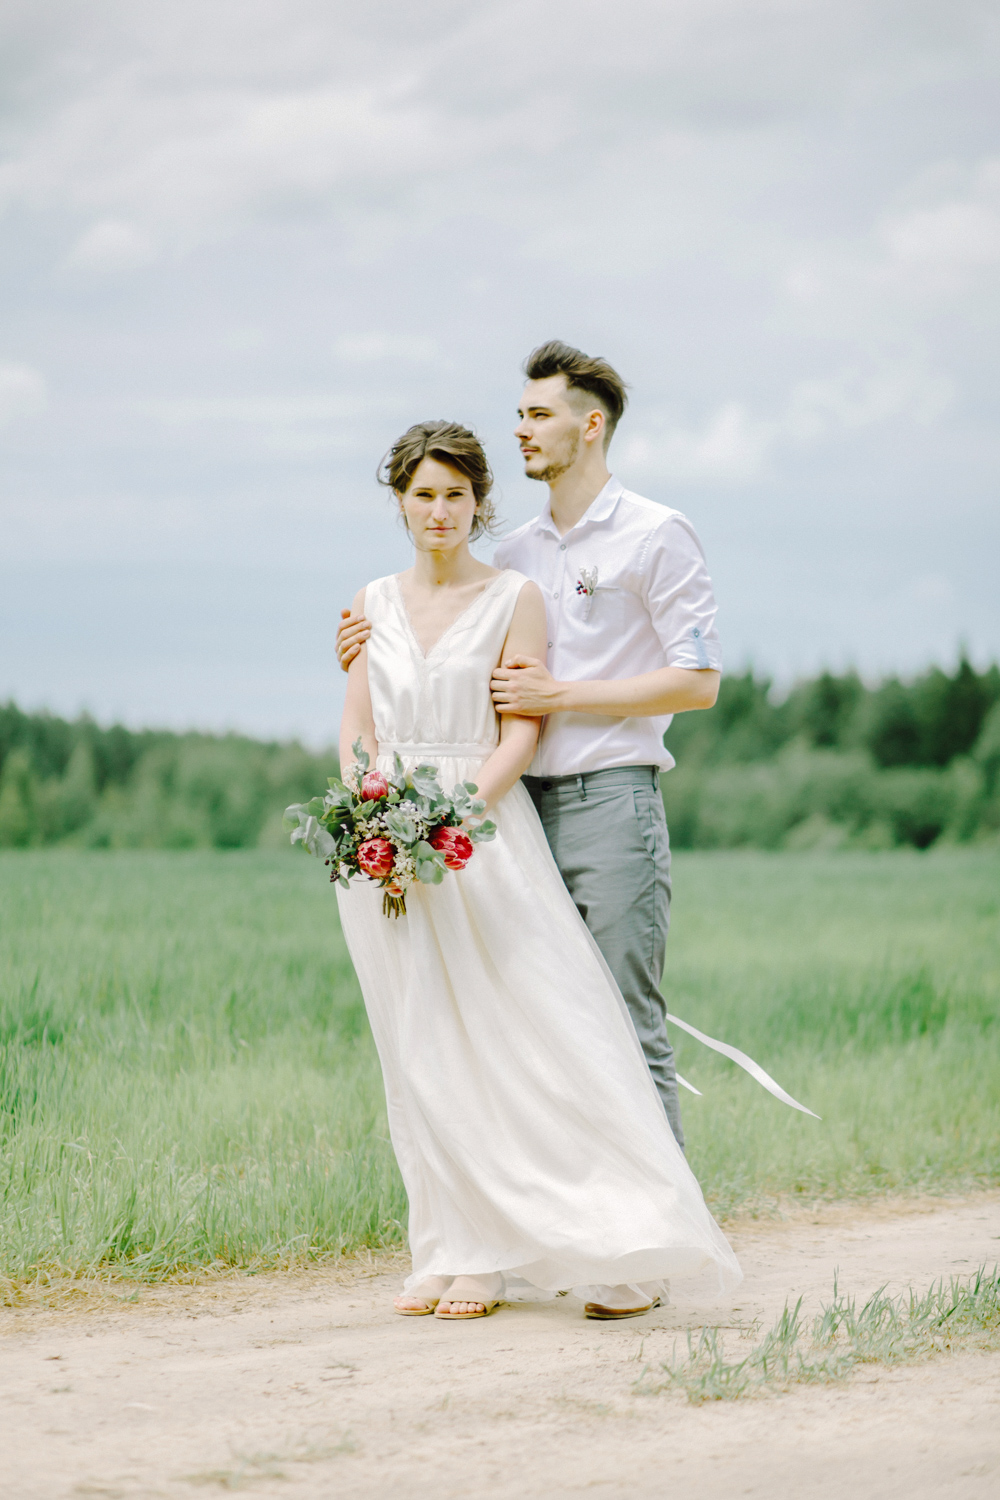 polinastudio.ru_wedding_ar-18